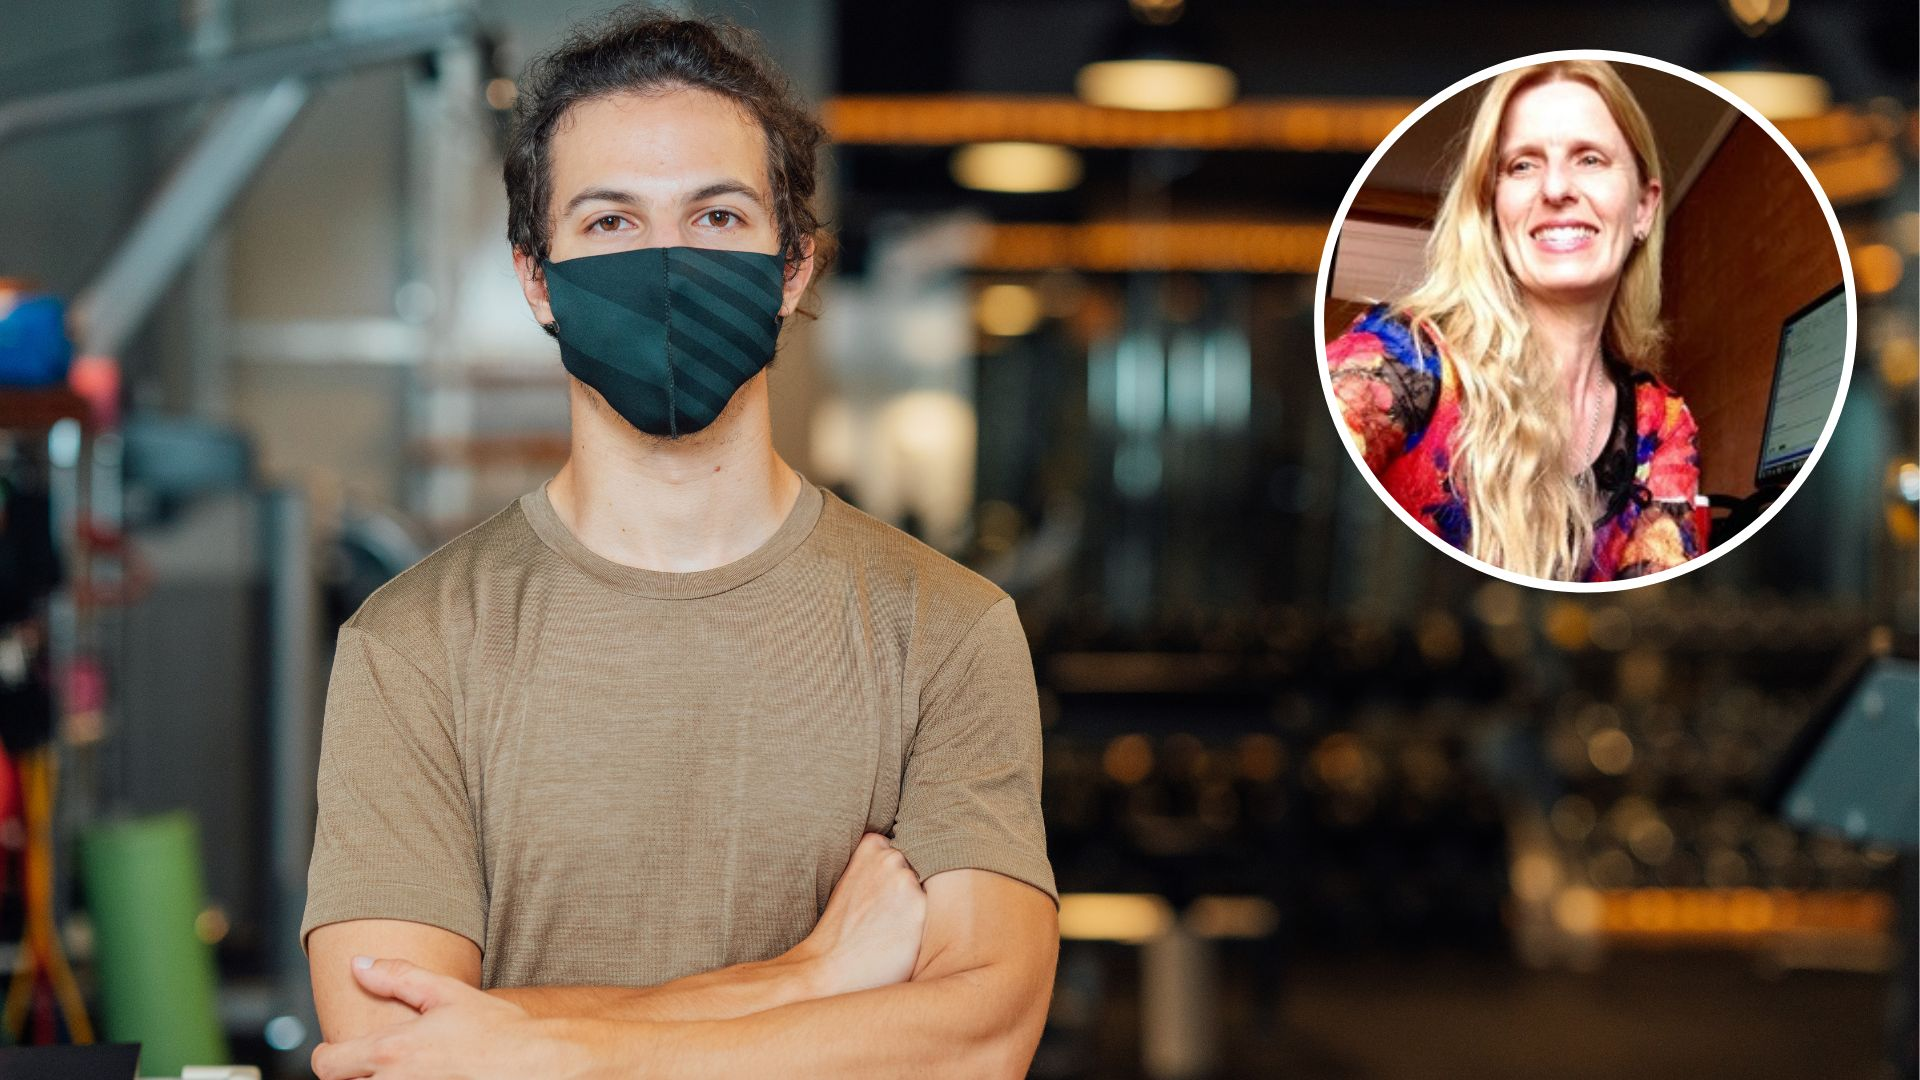 Victorian gyms will struggle to breathe after 100 lockdown days